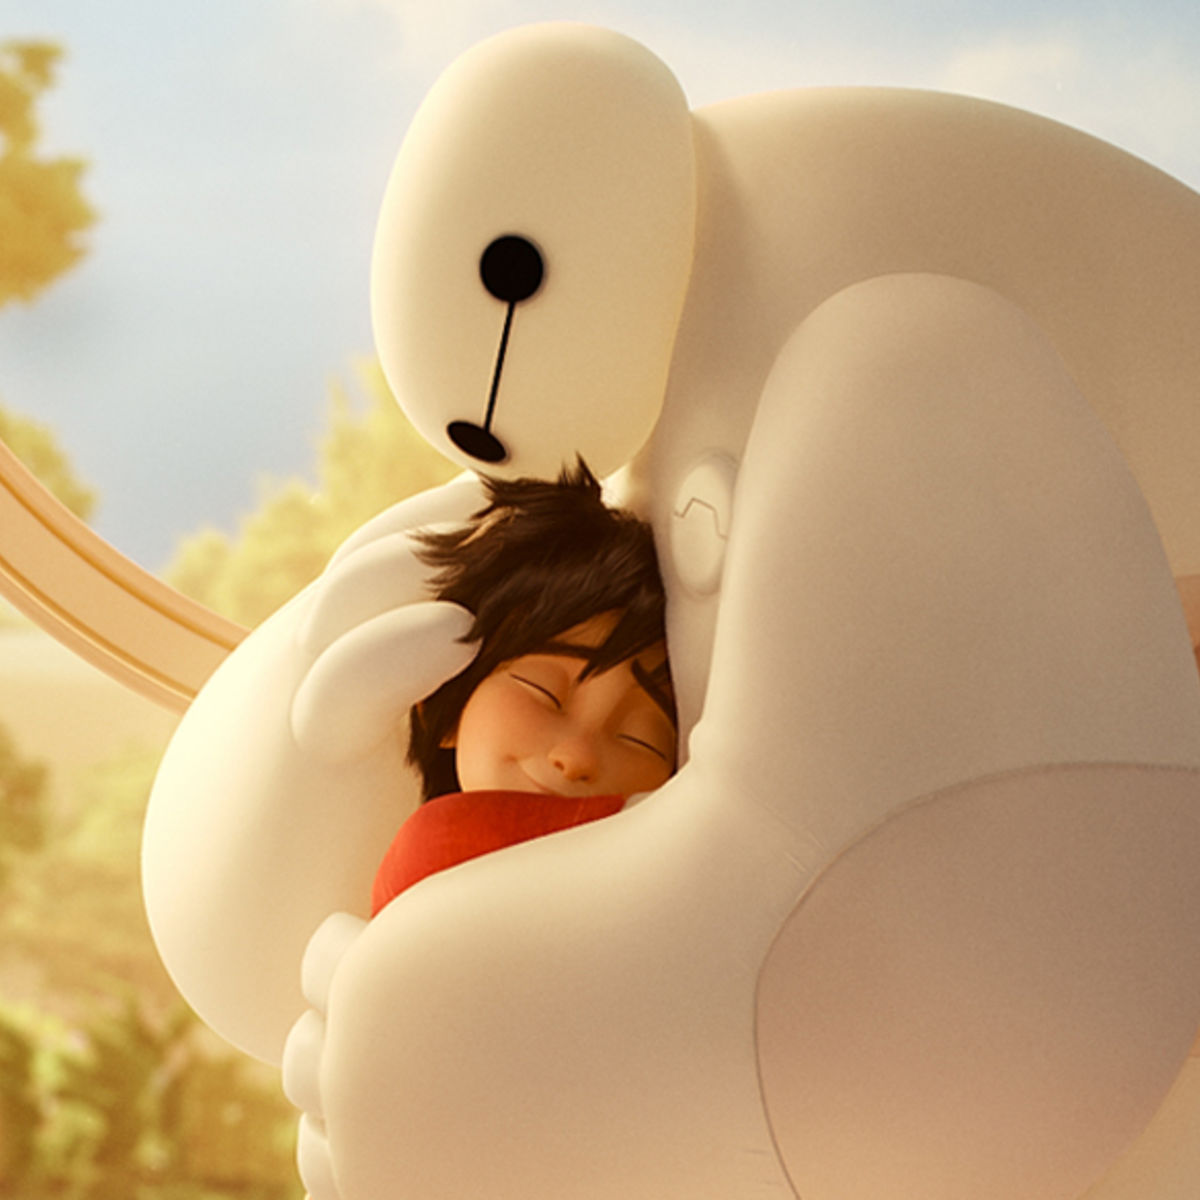 bh6-baymax-huggable-award-final-copy1.jpg